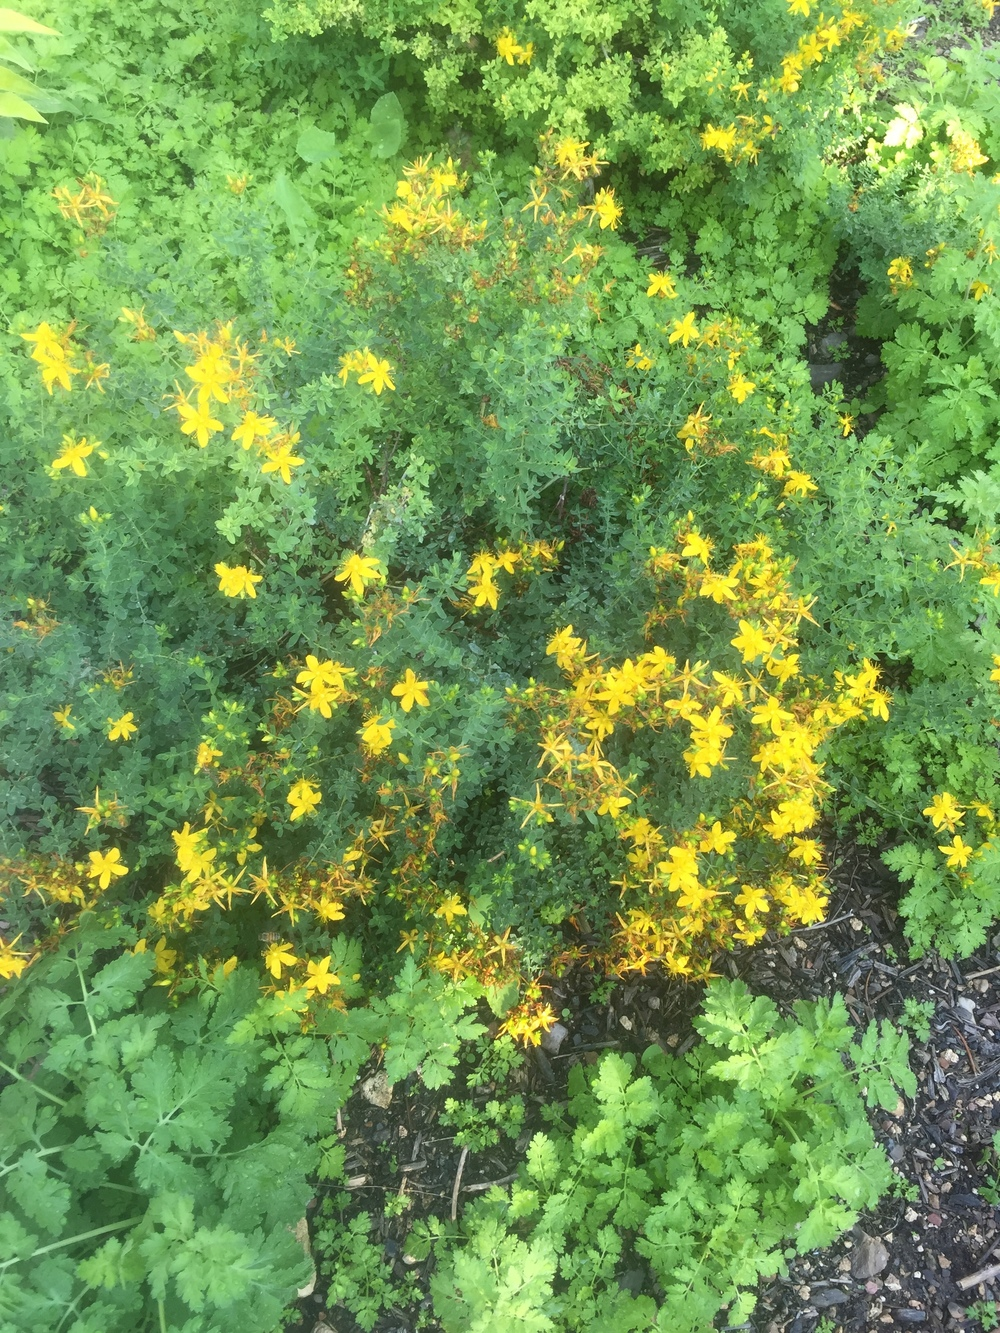 A patch of St. John's Wort and a bit of Feverfew too.